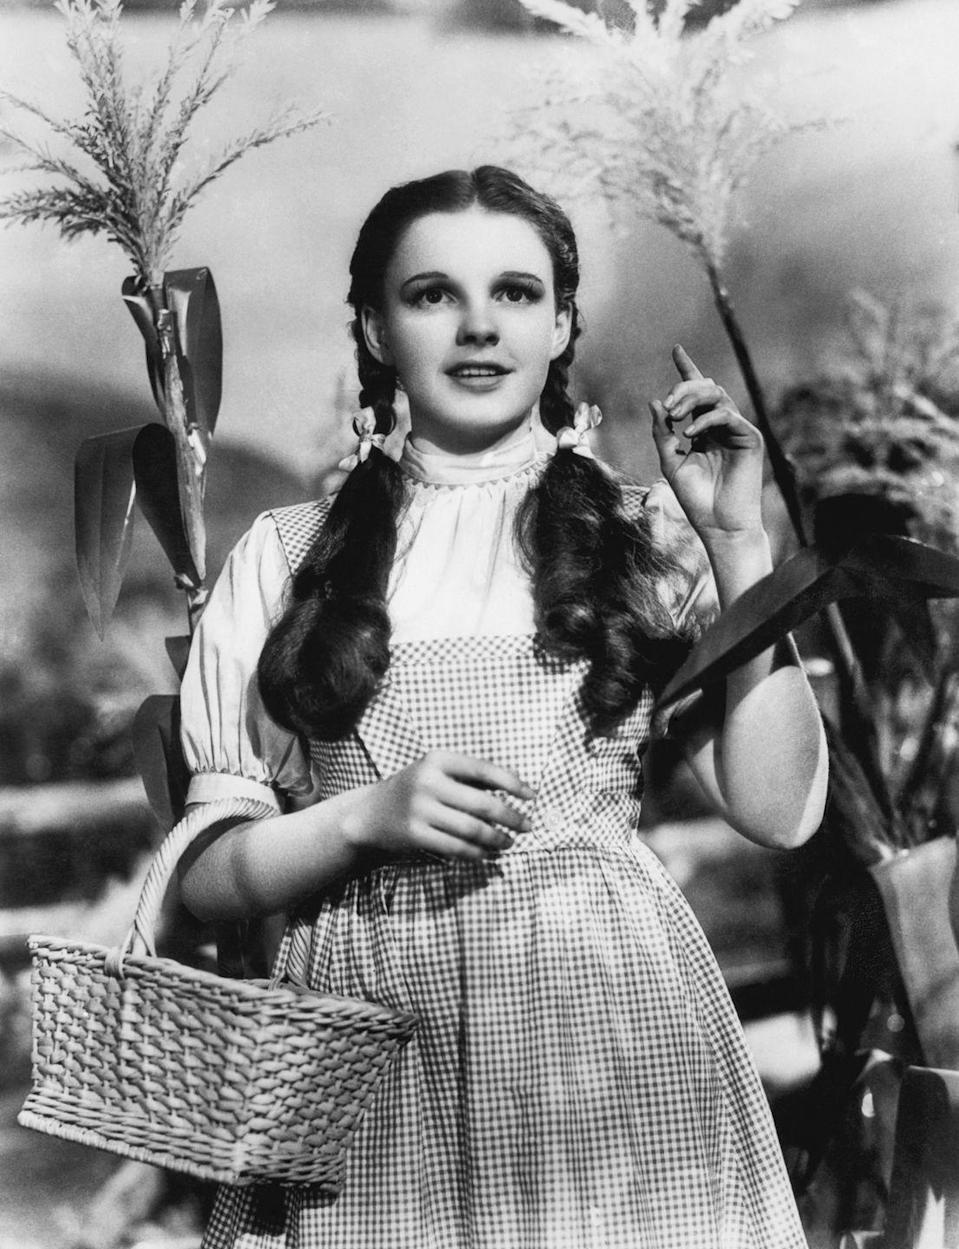 <p>Starring in her most famous role as Dorothy in 1938's wildly popular Wizard of Oz, Judy Garland helped popularize the curly pigtail look.</p>